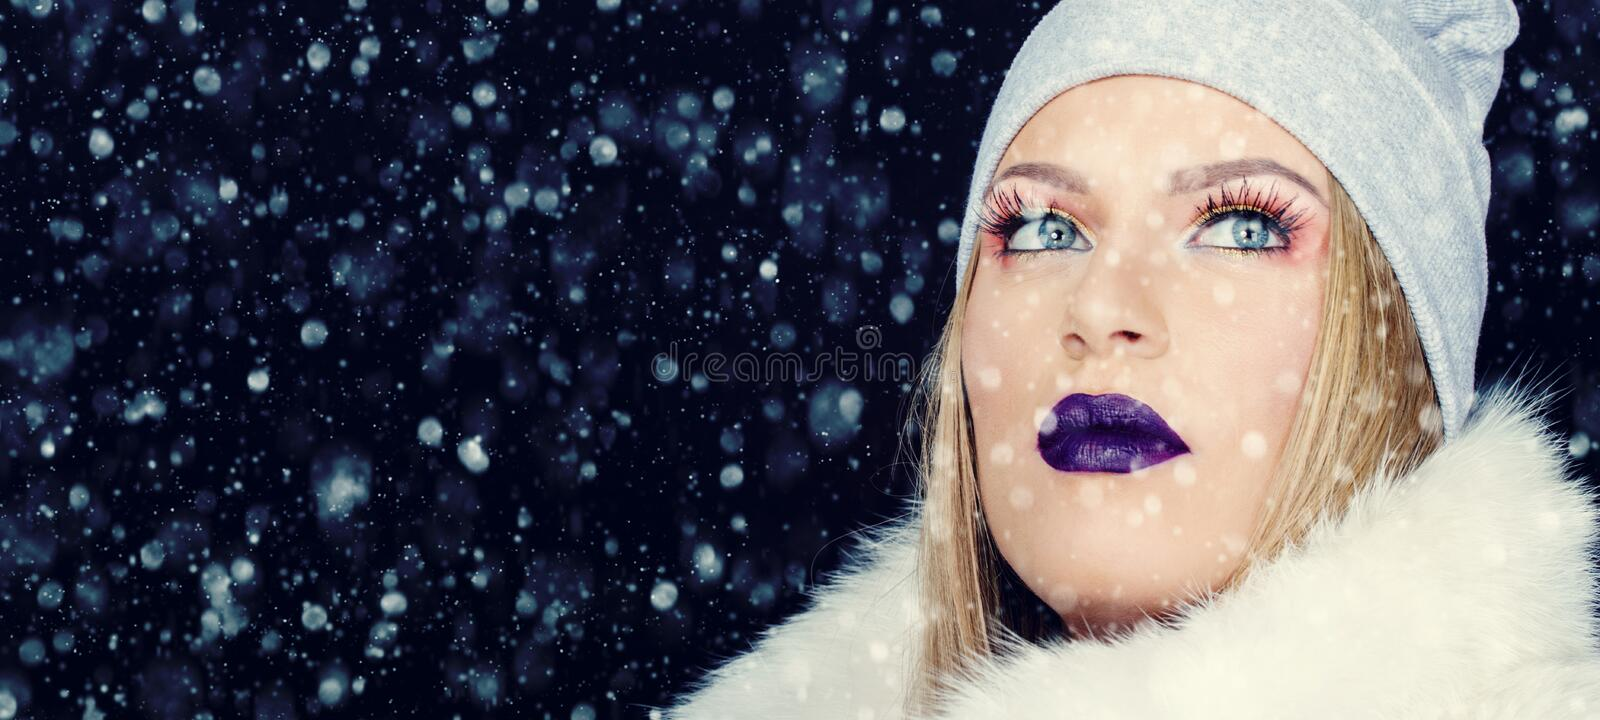 Portrait of young woman in wintertime outdoor Christmas stock photos